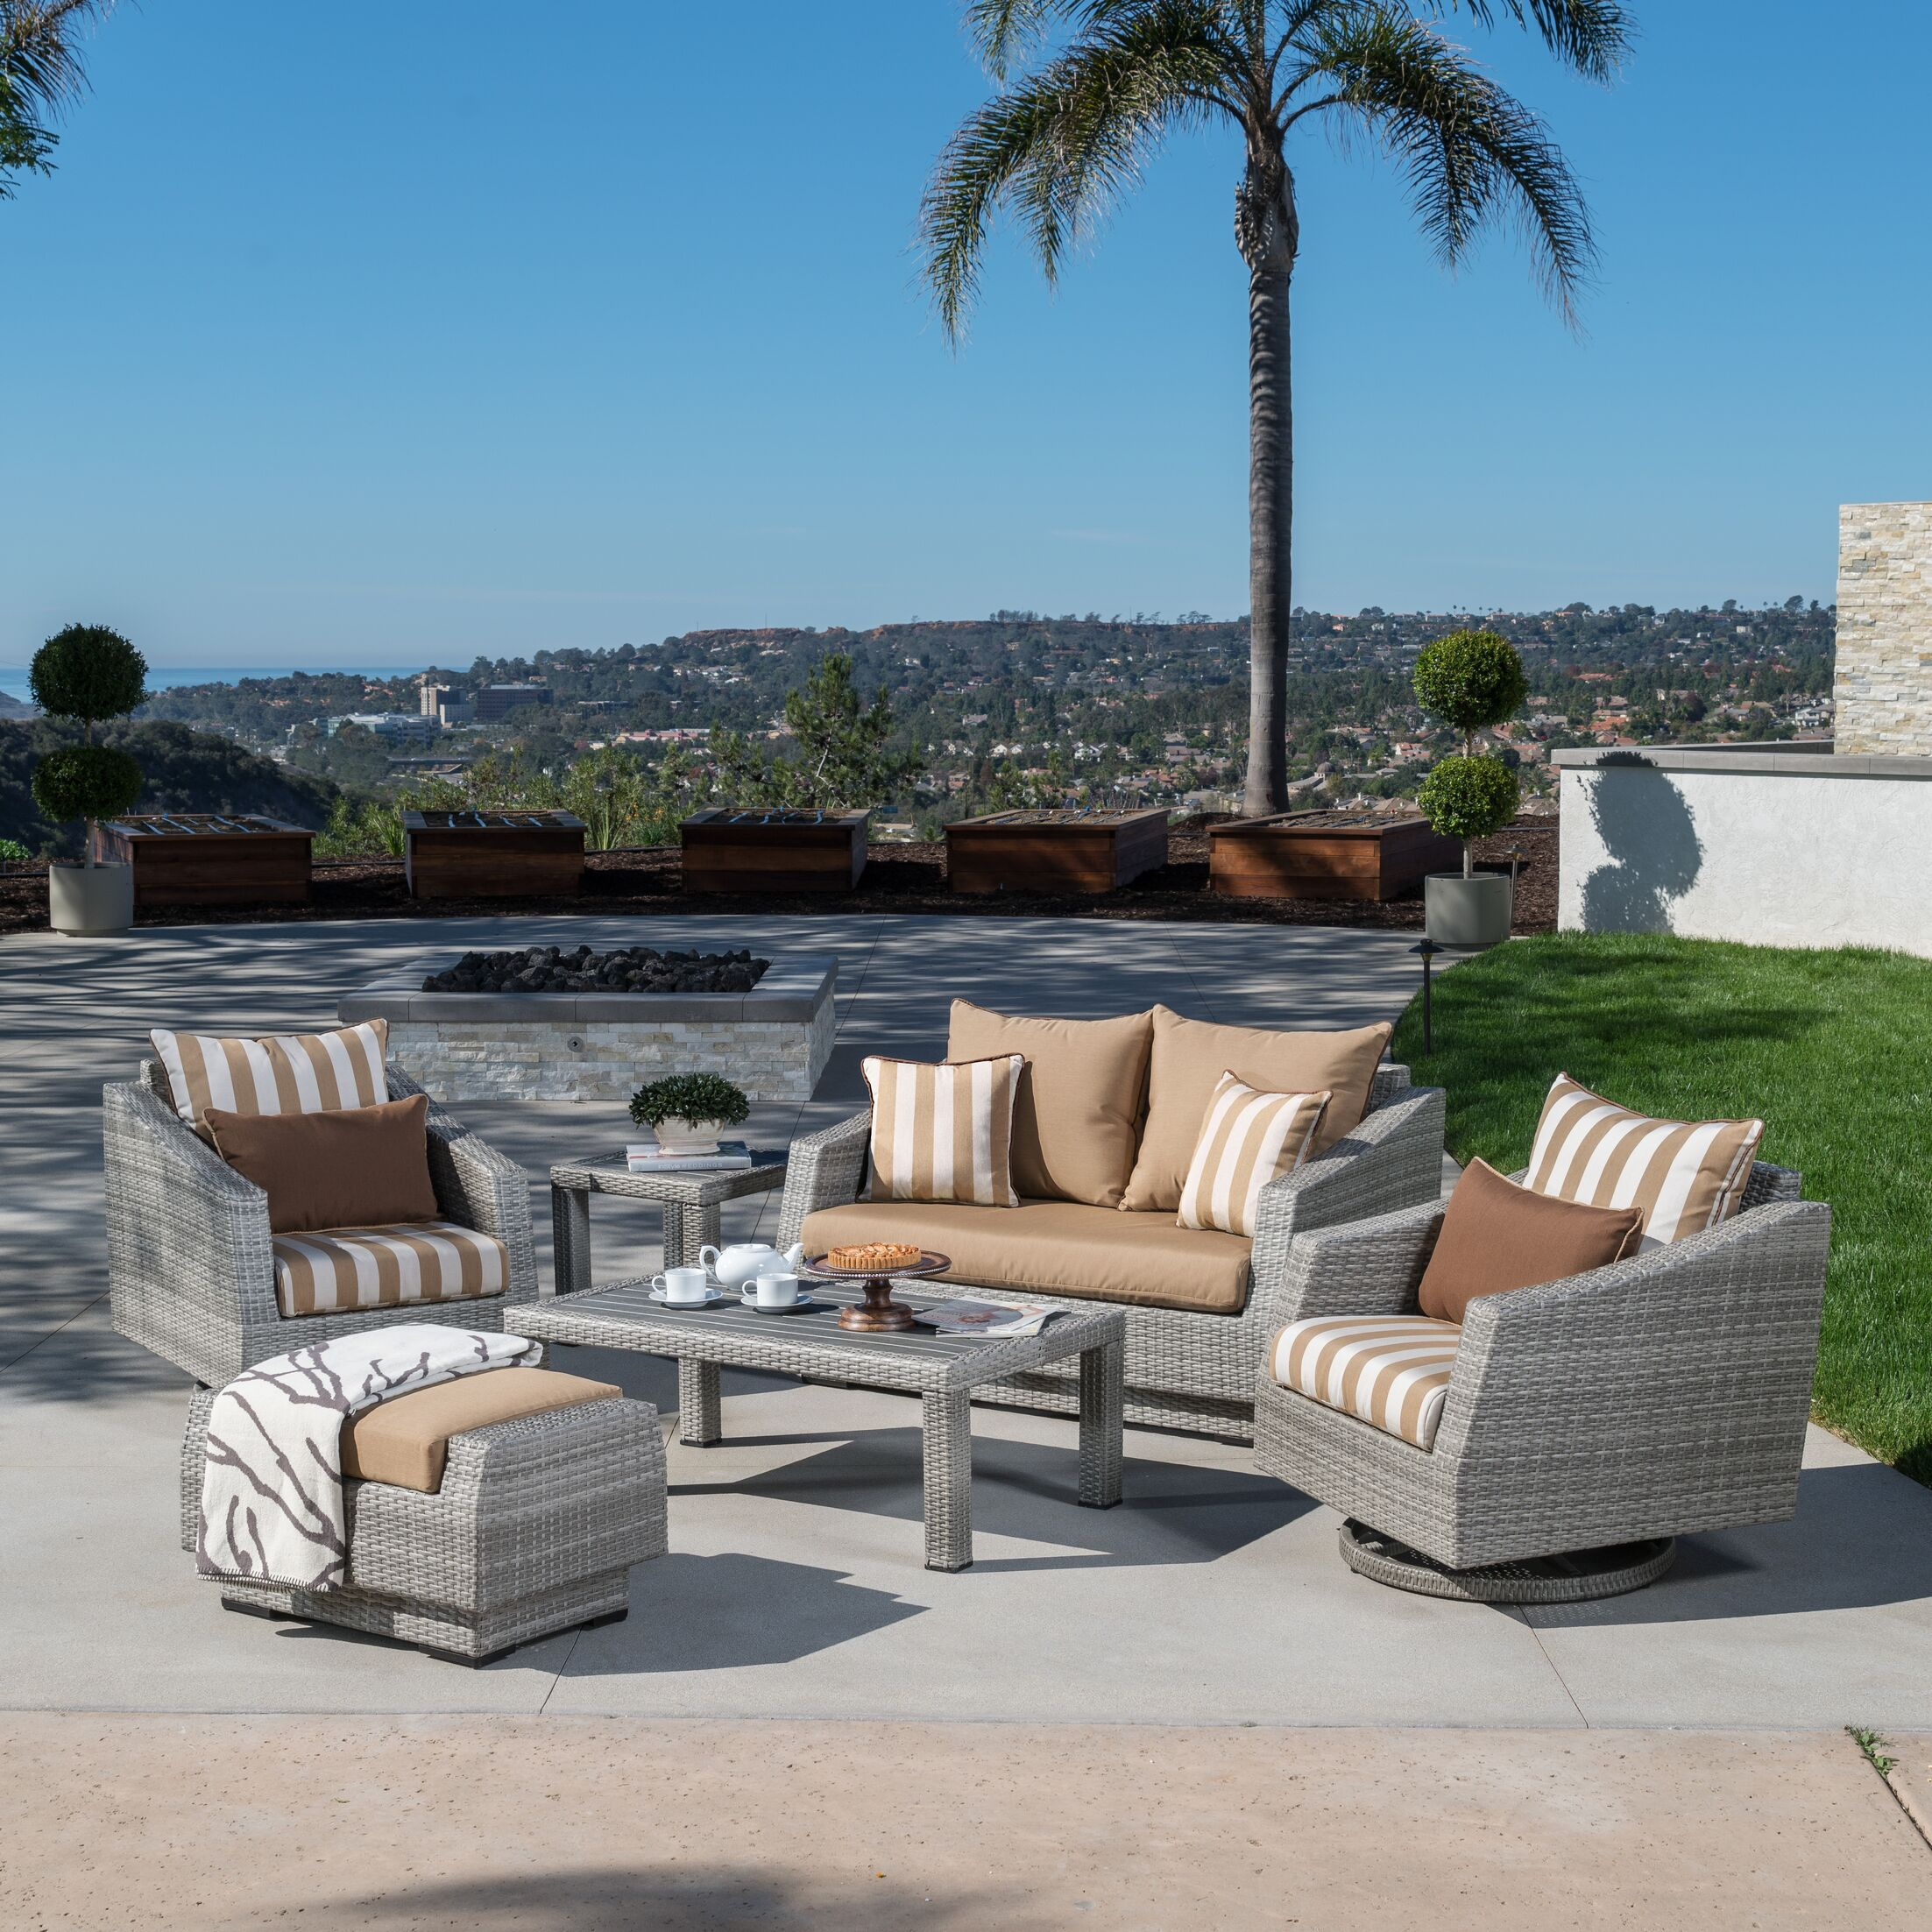 Greenfield Deluxe Love and Motion 6 Piece Sunbrella Sofa Set with Cushions Fabric: Maxim Beige